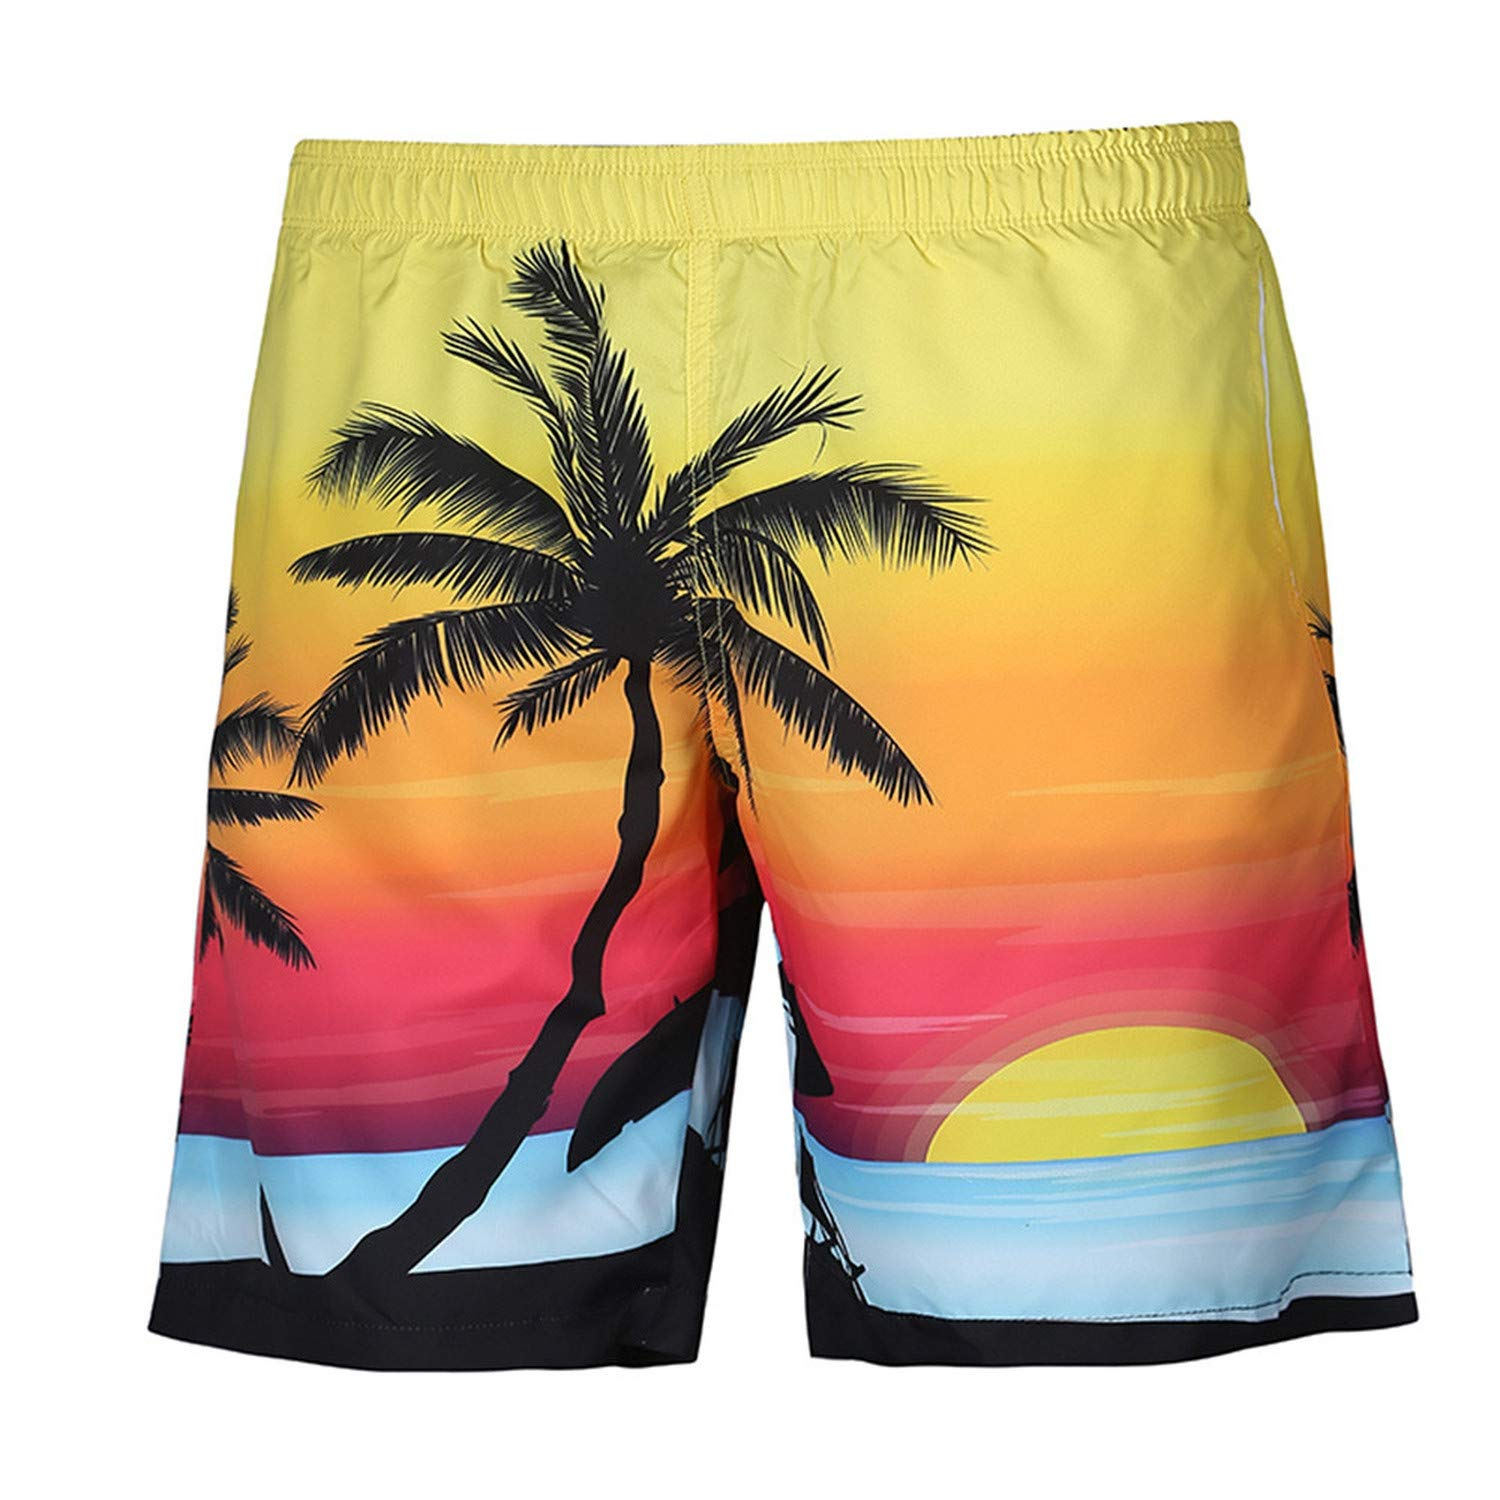 EspTmall Mens Summer Casual Plus Size Tropic Hawaii Palm 3D Printed Beach Shorts Pants 2019 Swimming Top for Men Swimsuit Multi L China